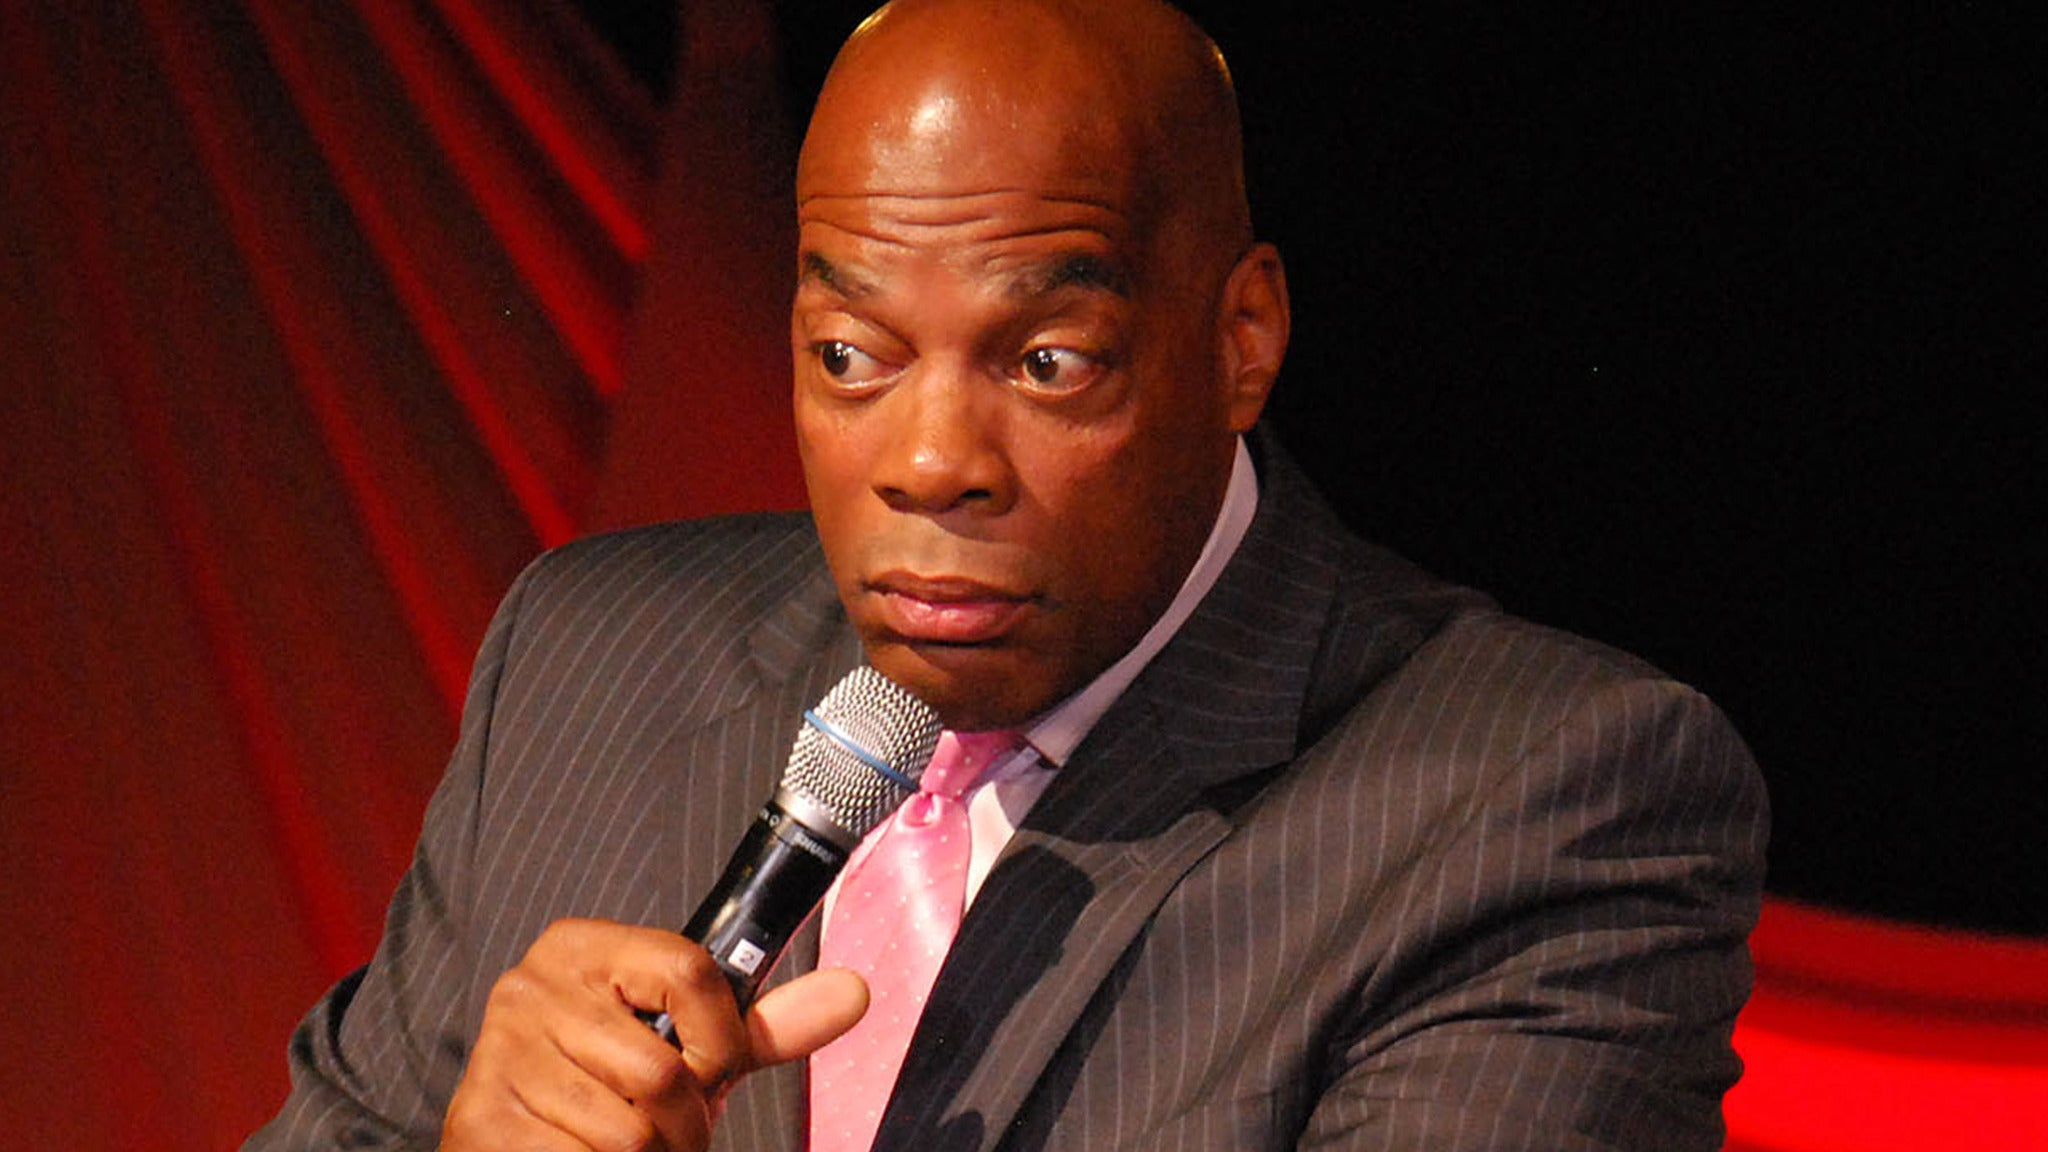 Alonzo Bodden at Pechanga Resort and Casino - Temecula, CA 92592